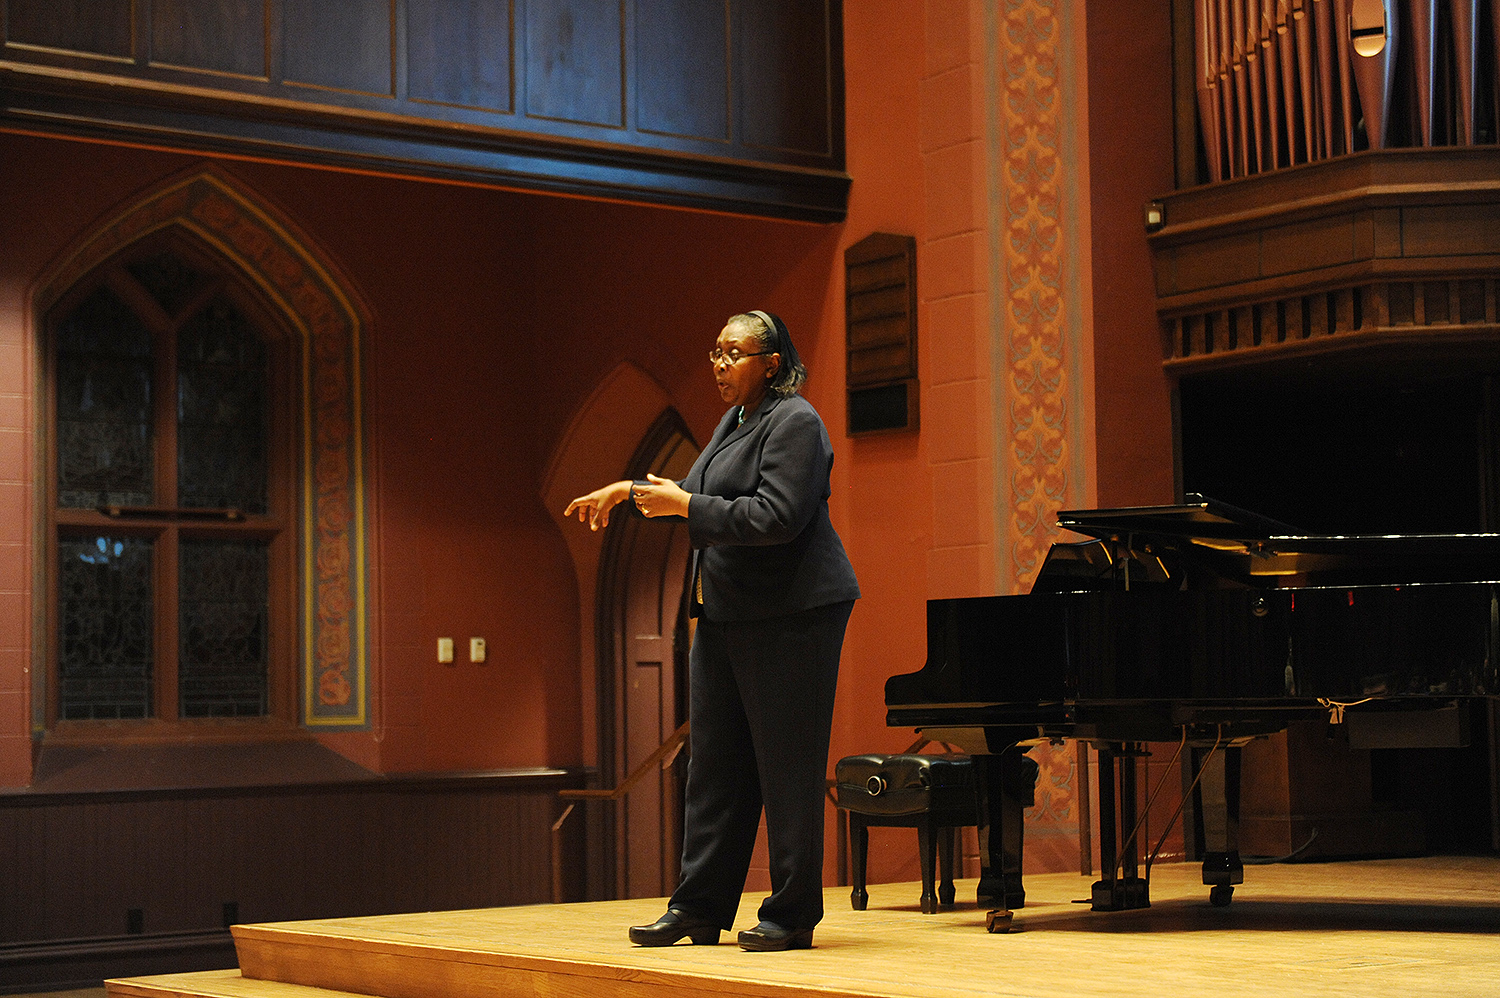 "On Jan. 29, the campus community attended the annual commemoration of Rev. Dr. Martin Luther King Jr.'s legacy in Memorial Chapel. Dorceta E. Taylor, a leading voice in the environmental justice movement, delivered the keynote address, titled ""Different Shades of Green or Beyond the Farm."""